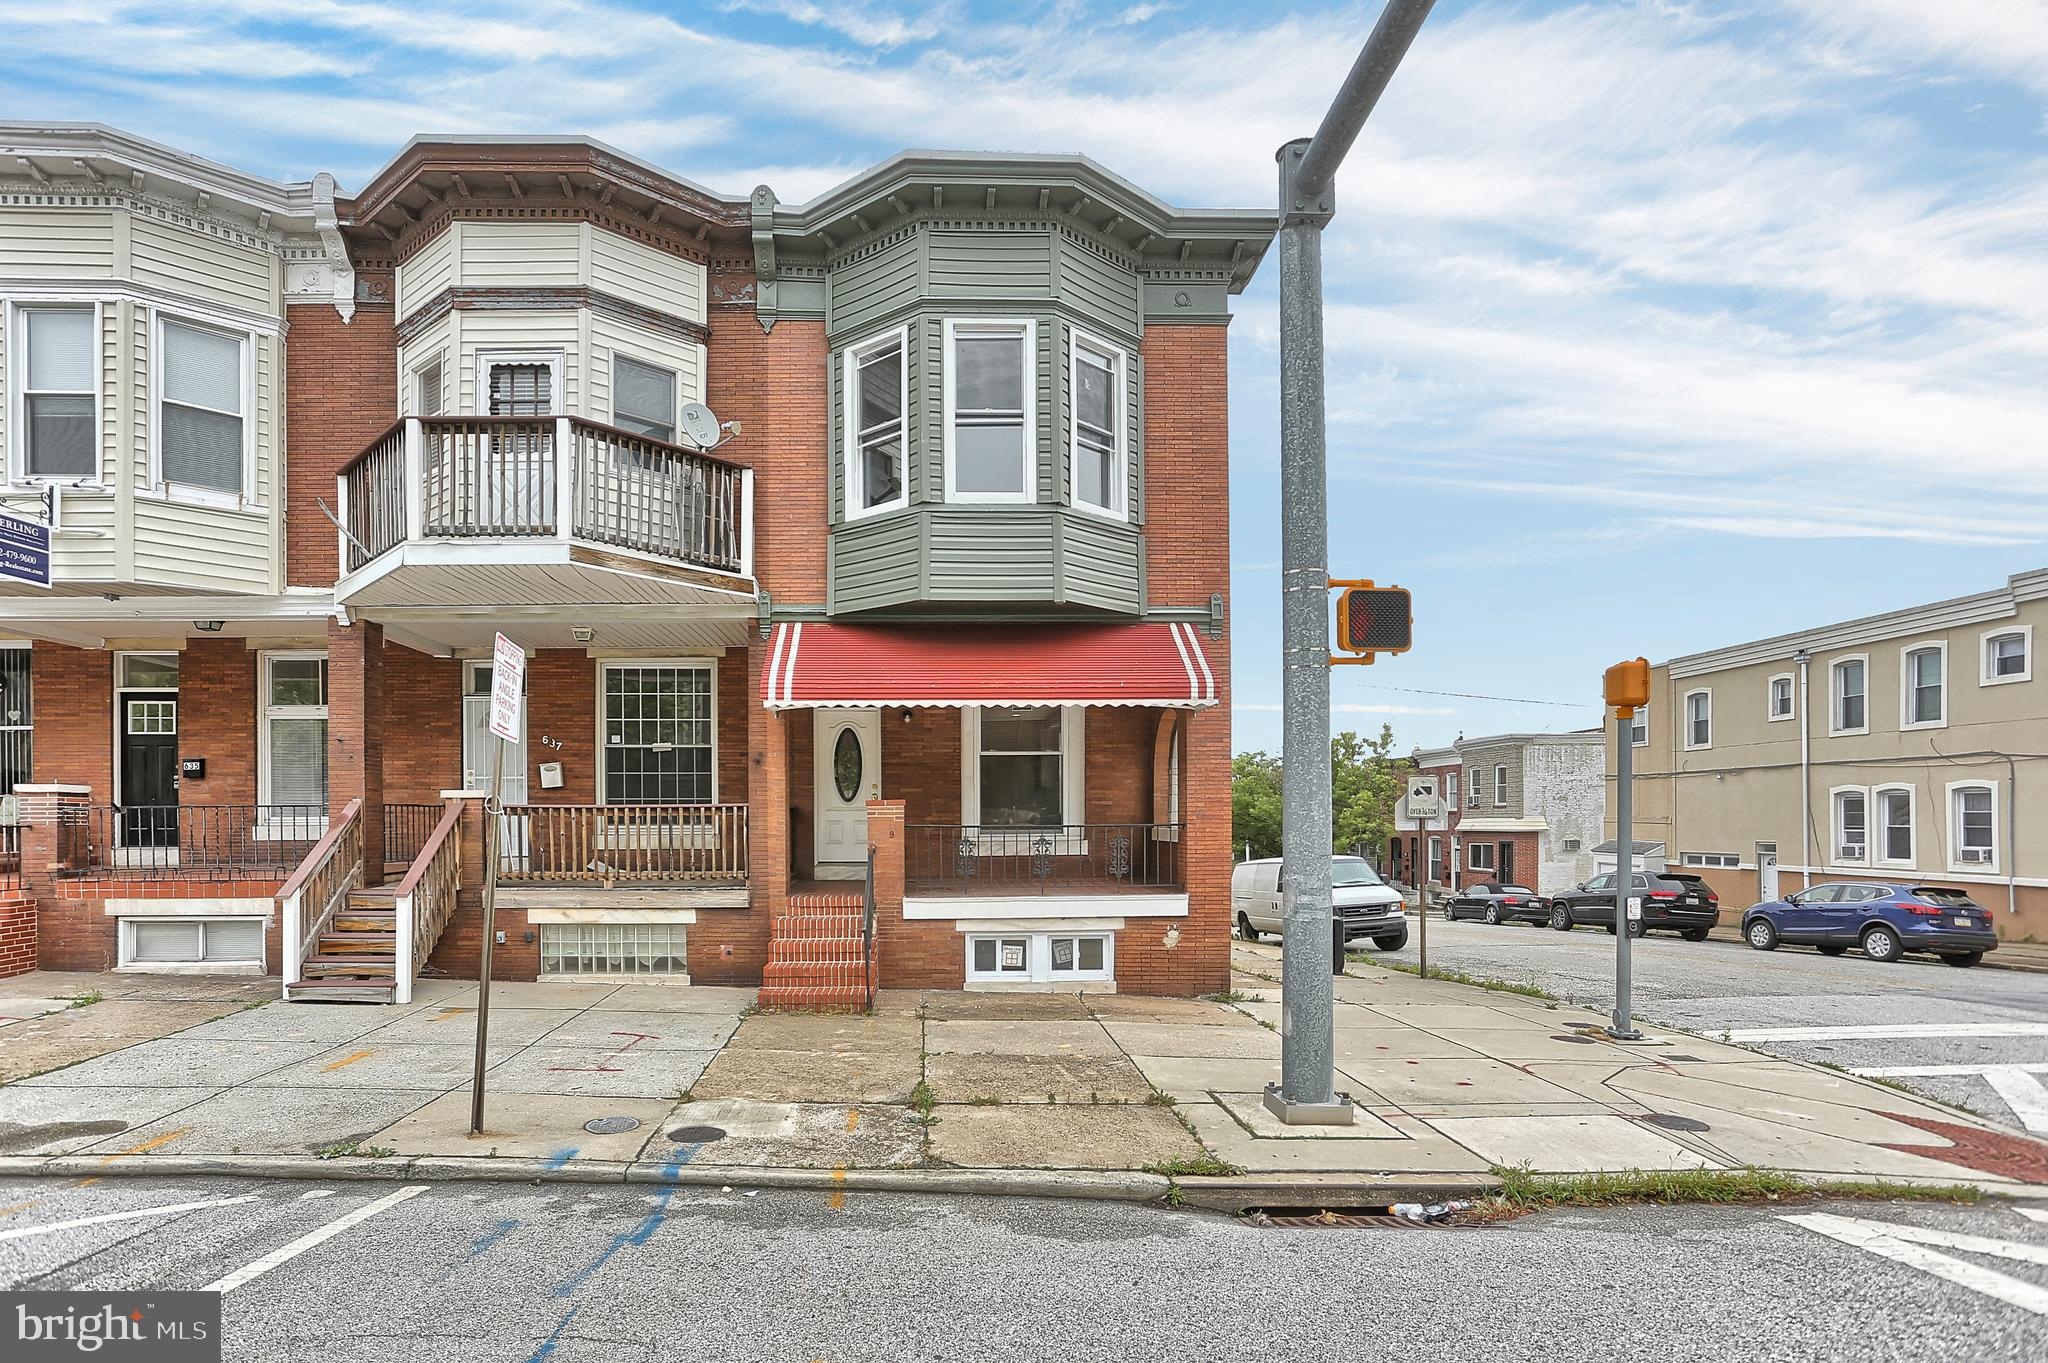 639 S CONKLING STREET, BALTIMORE, MD 21224